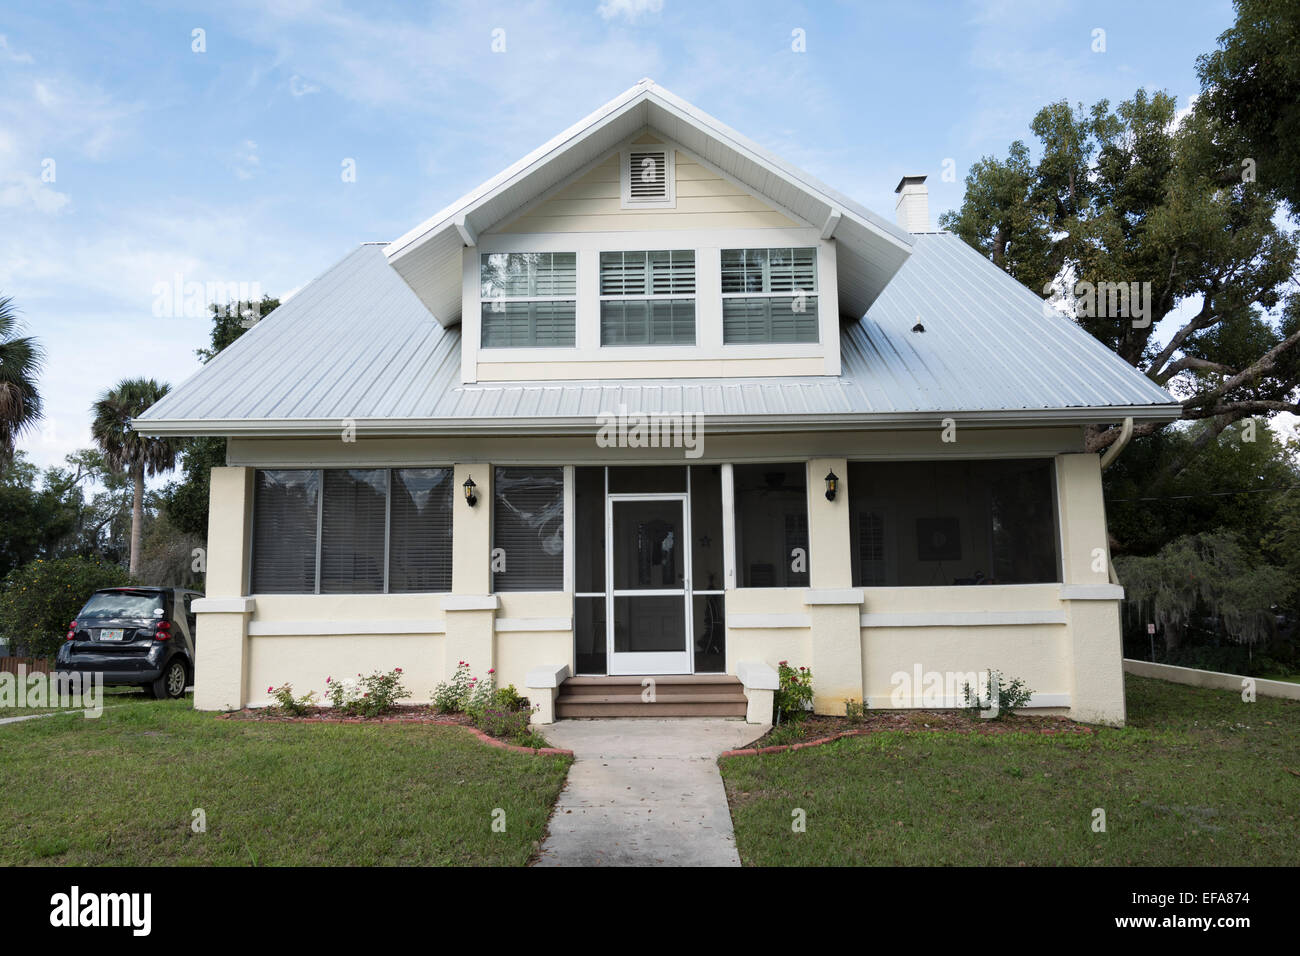 Maison typique de la Floride, Clermont, Lake County, Floride, États-Unis Photo Stock